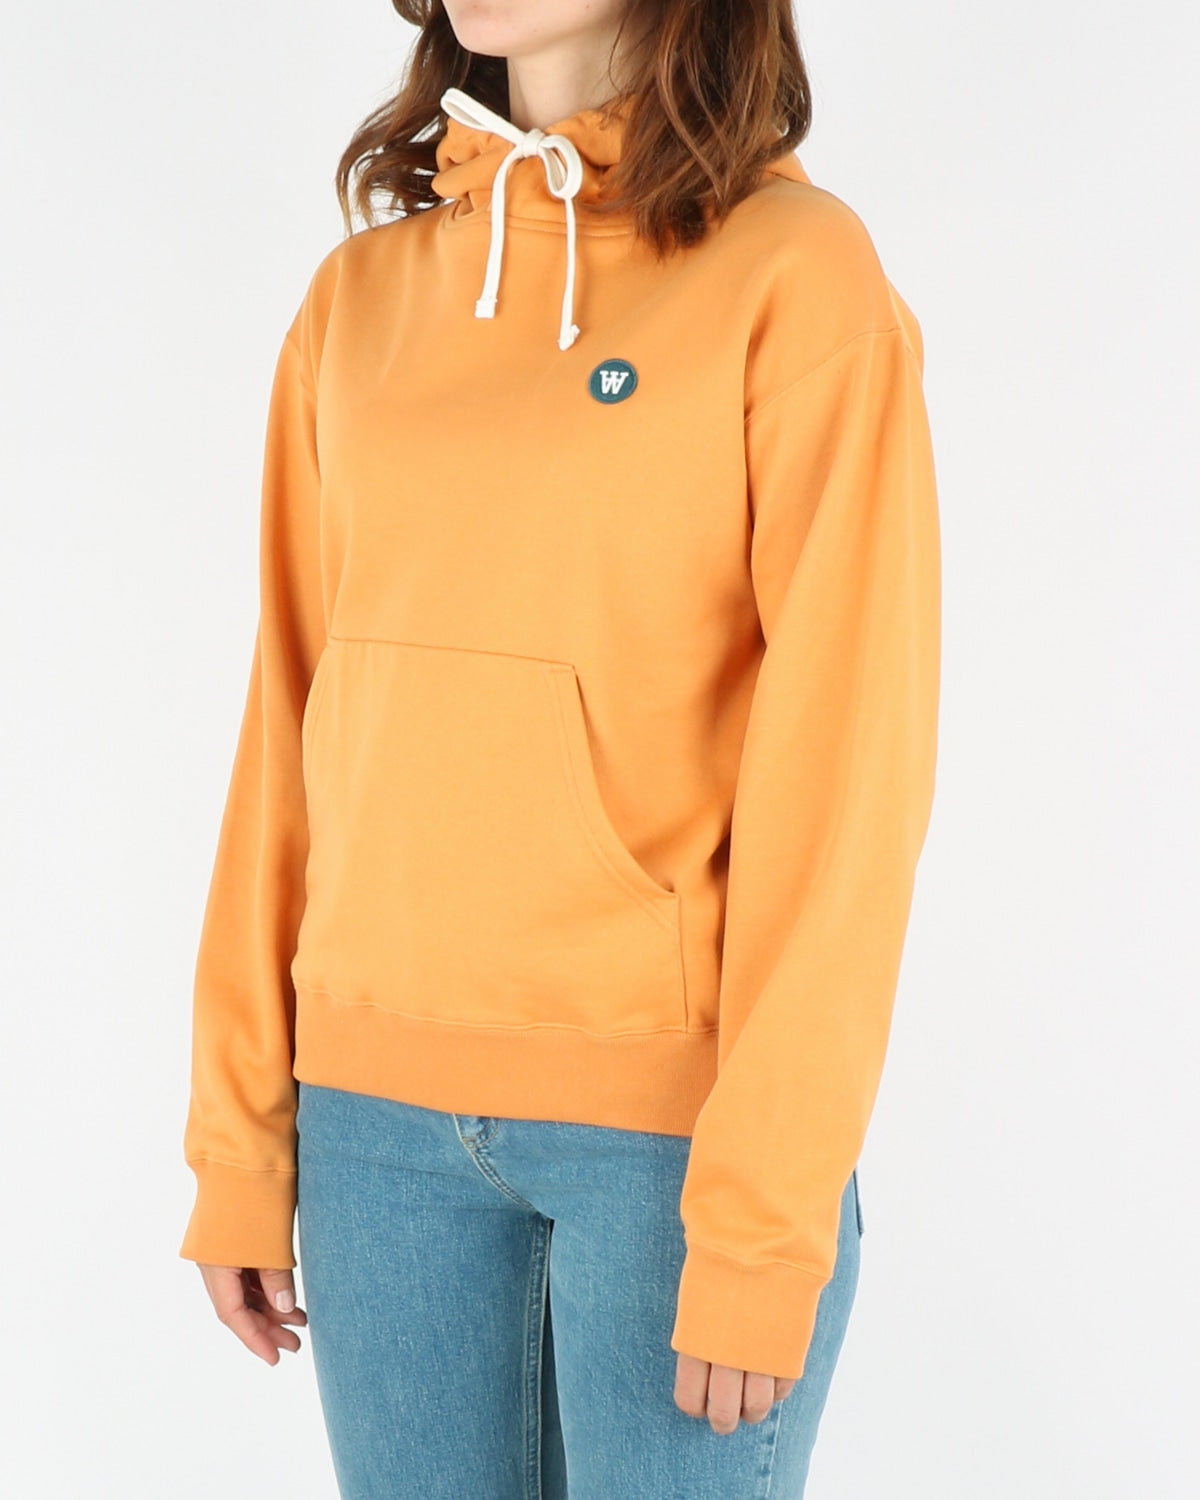 wood wood_jenn hoodie_orange_2_4